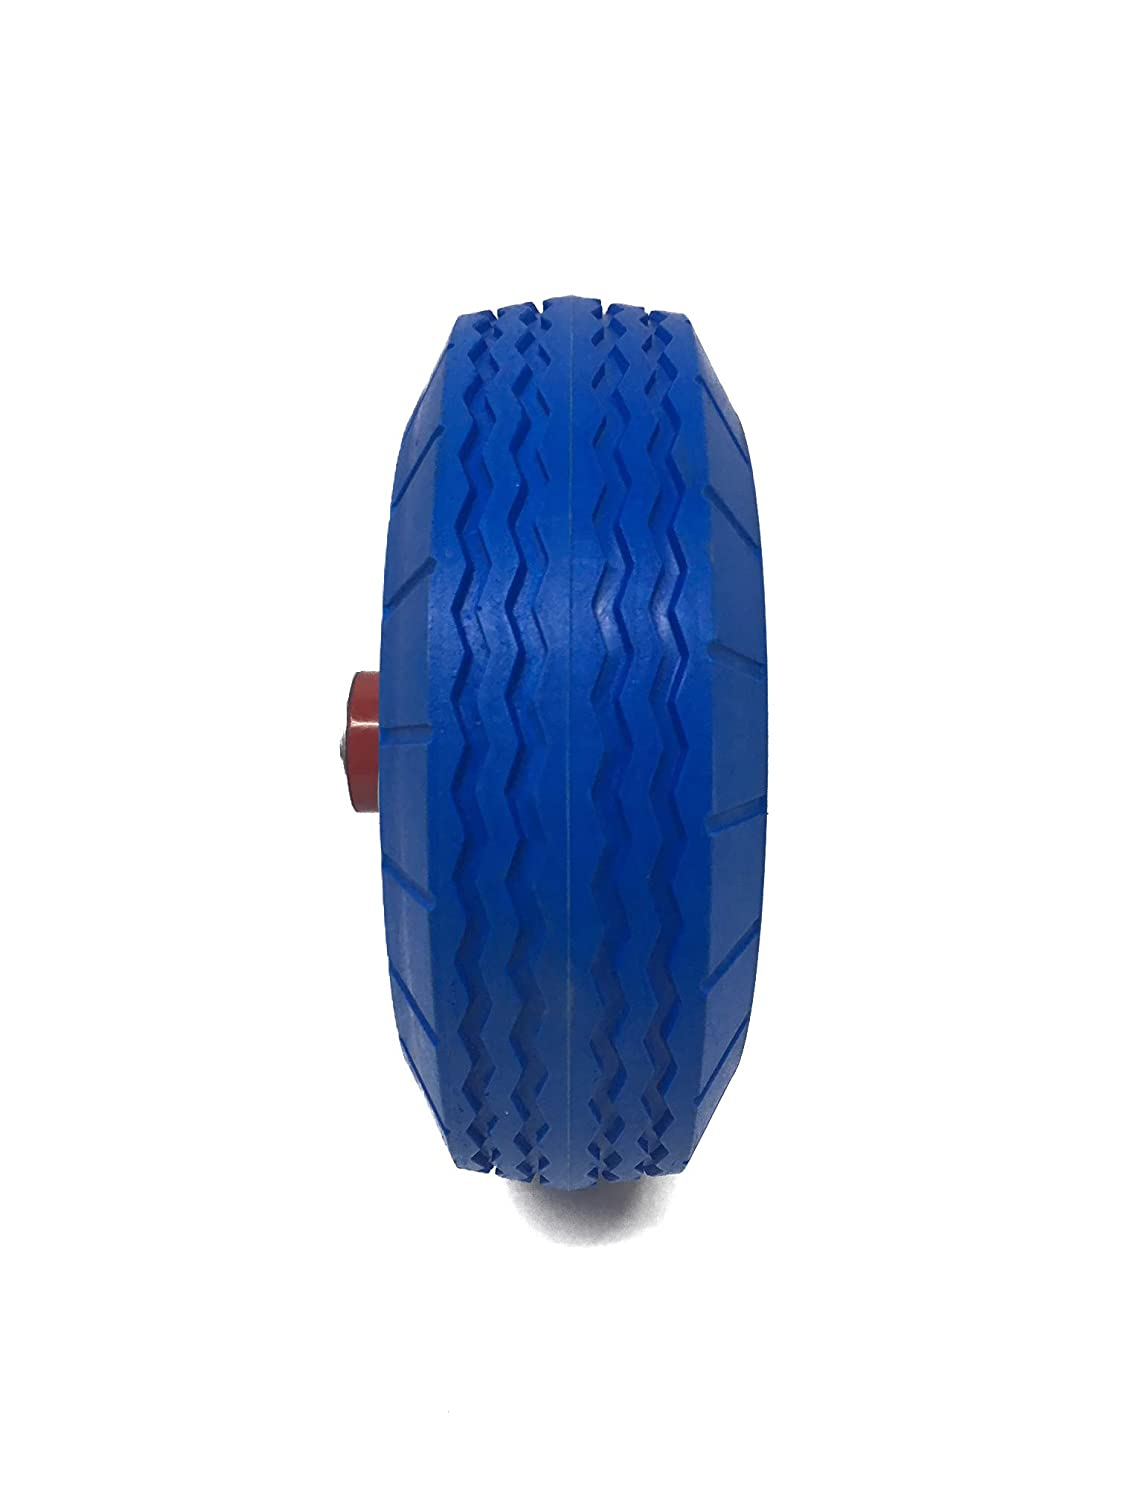 """UI PRO TOOLS 2PC IMPORTER 8.5/"""" Flat Free Rubber Tire 5//8 Bearing Hole Solid Tire Wheel Lawn /& Garden Dolly Hand Truck Cart//All Purpose Utility Tire on Wheel 8.5D-2PC"""